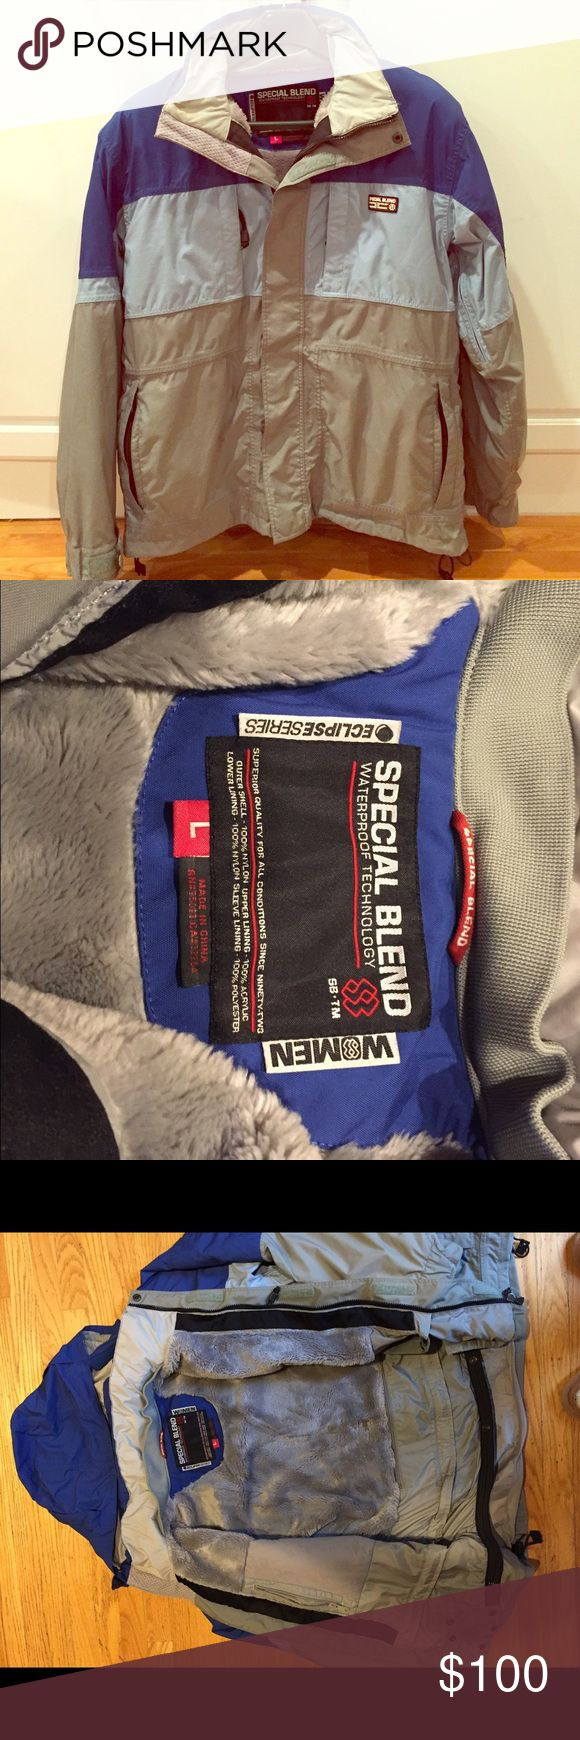 Special blend snowboard jacket women's large Excellent condition jacket for cold weather! Includes 7 zip pockets, arm vents and removable hood. special blend Jackets & Coats Utility Jackets